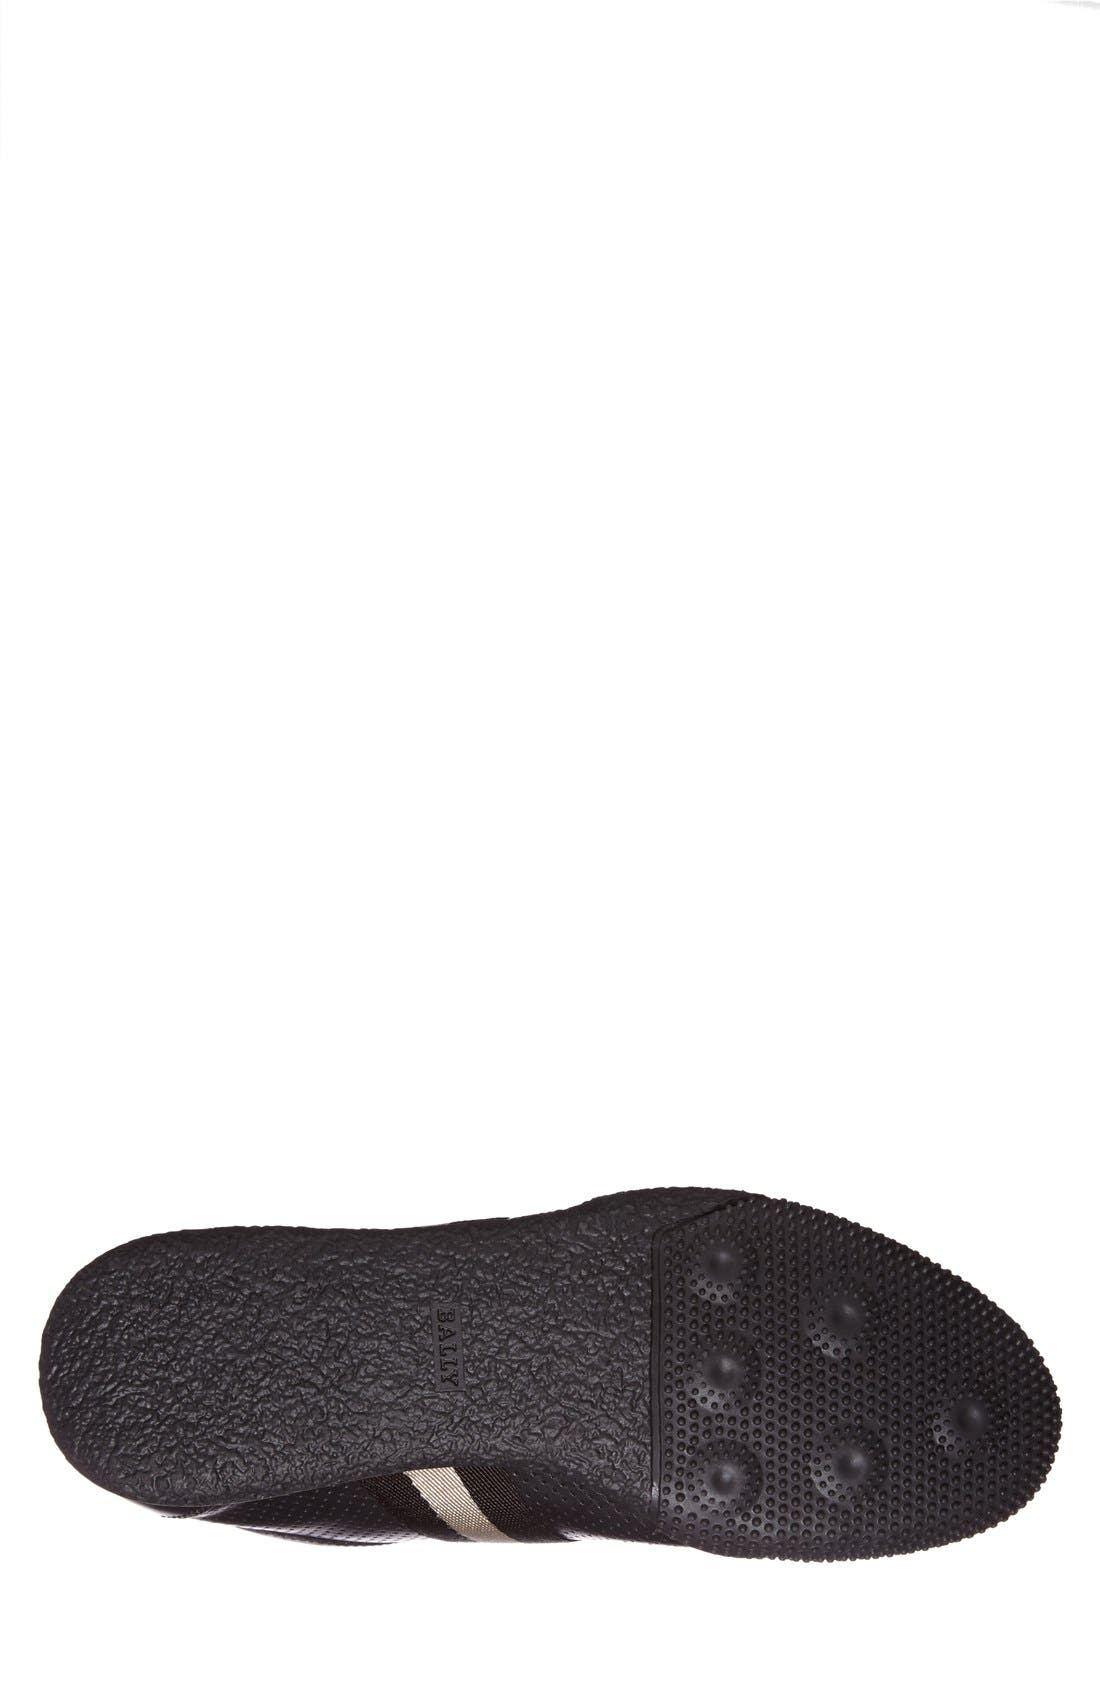 'Frenz' Perforated Sneaker,                             Alternate thumbnail 2, color,                             001